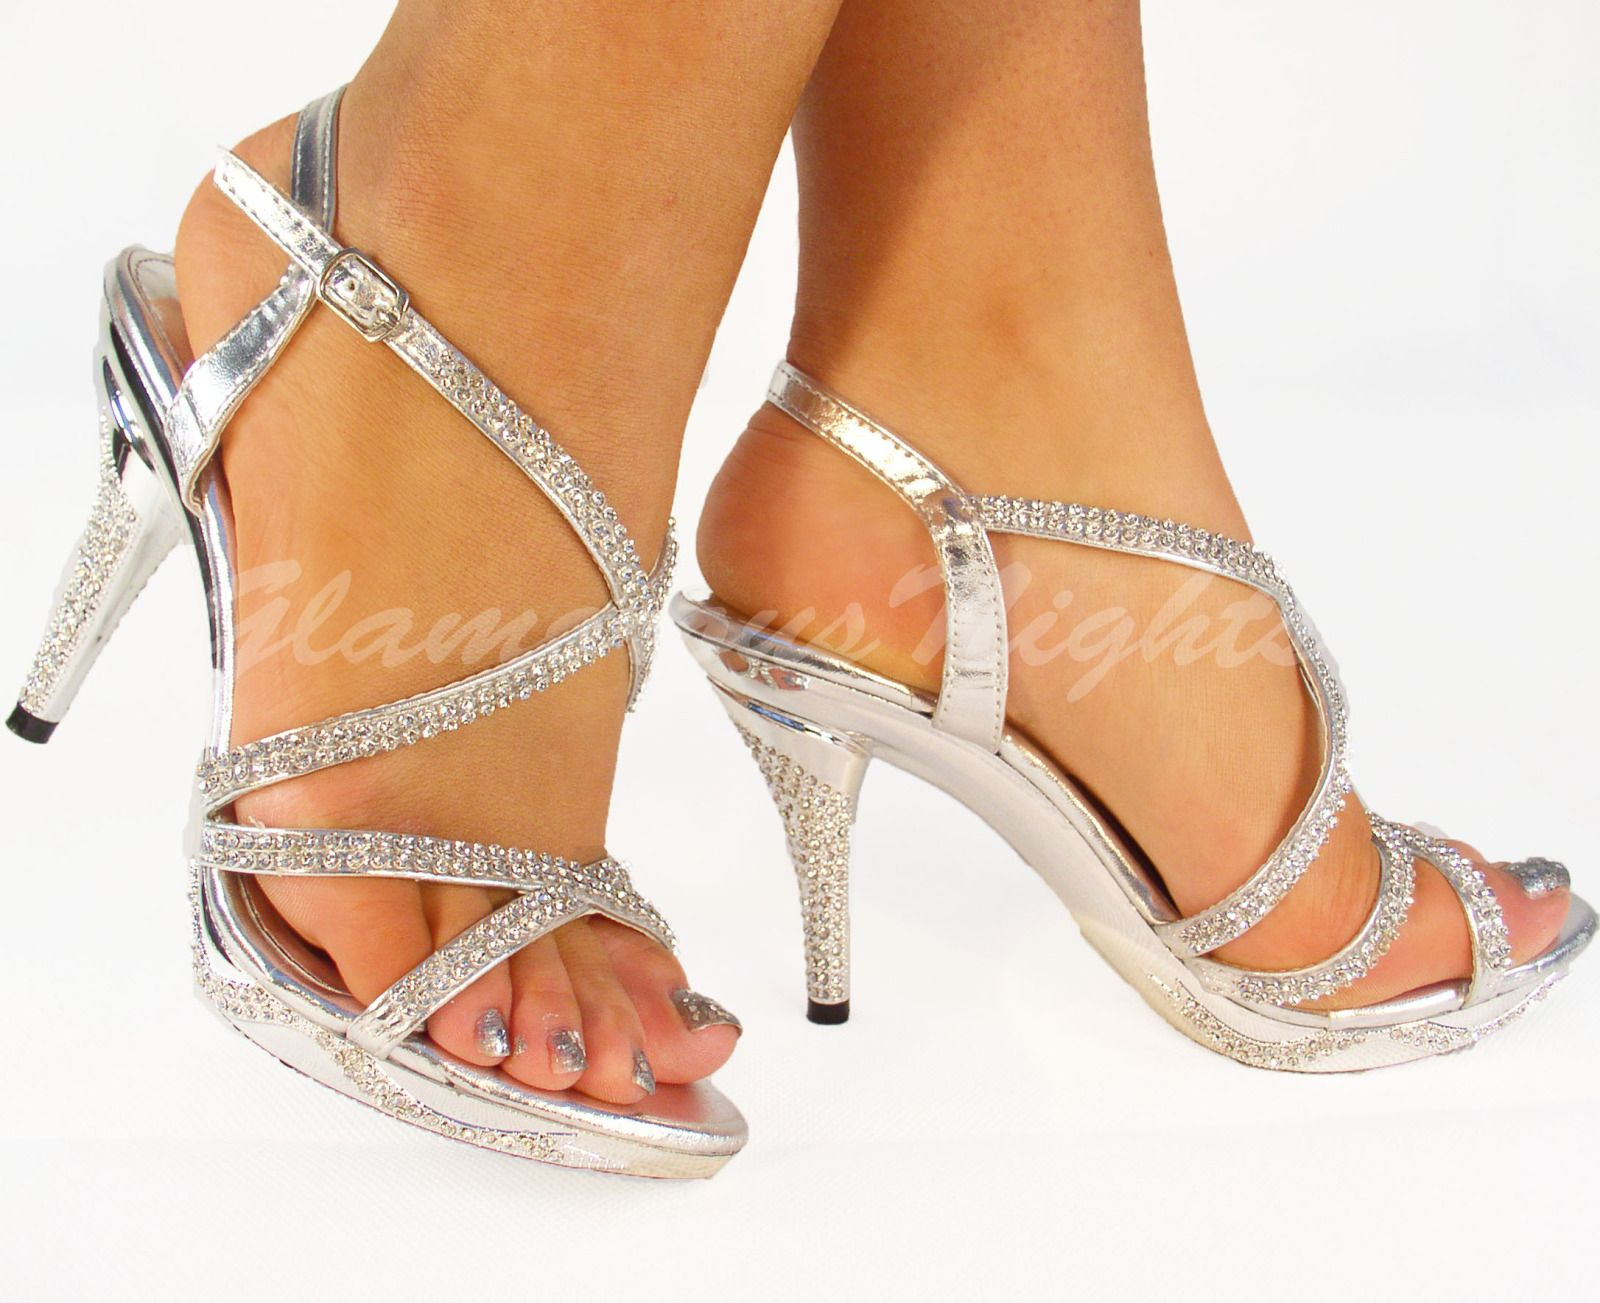 e6d440f3ca2 Silver diamante encrusted medium heel platform sandal shoes wedding ...